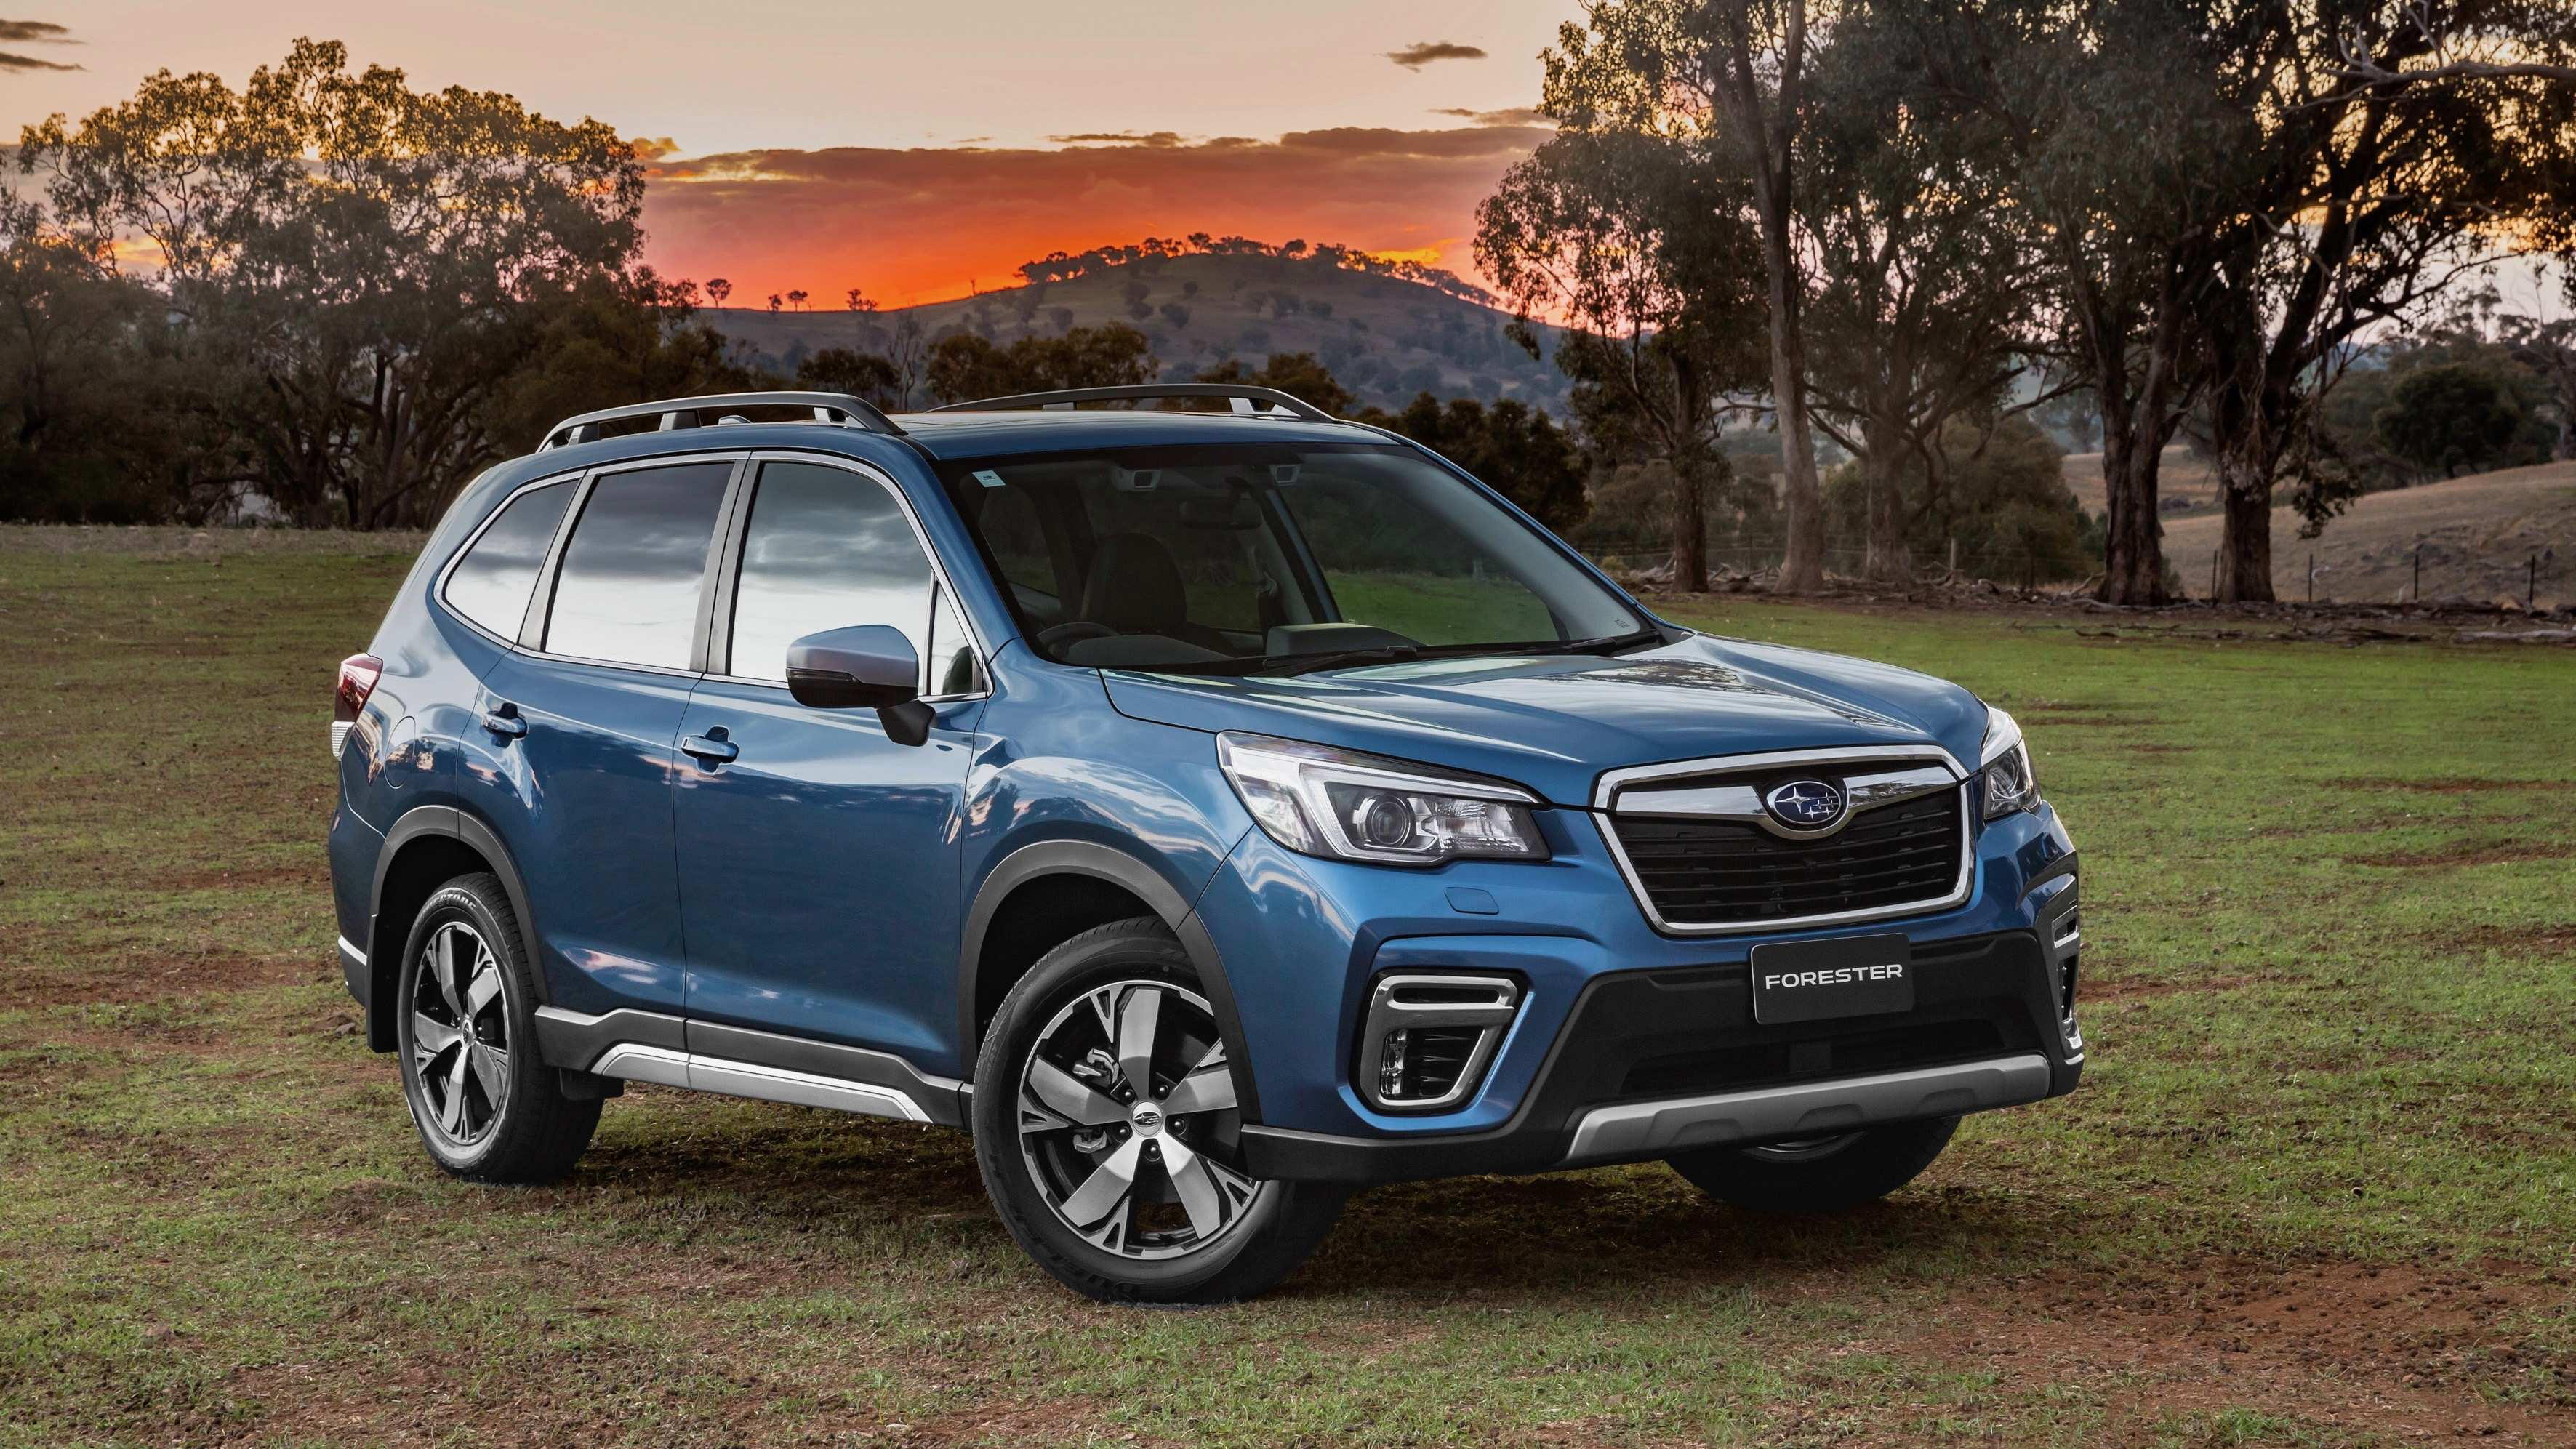 80 All New 2019 Subaru Forester Exterior And Interior